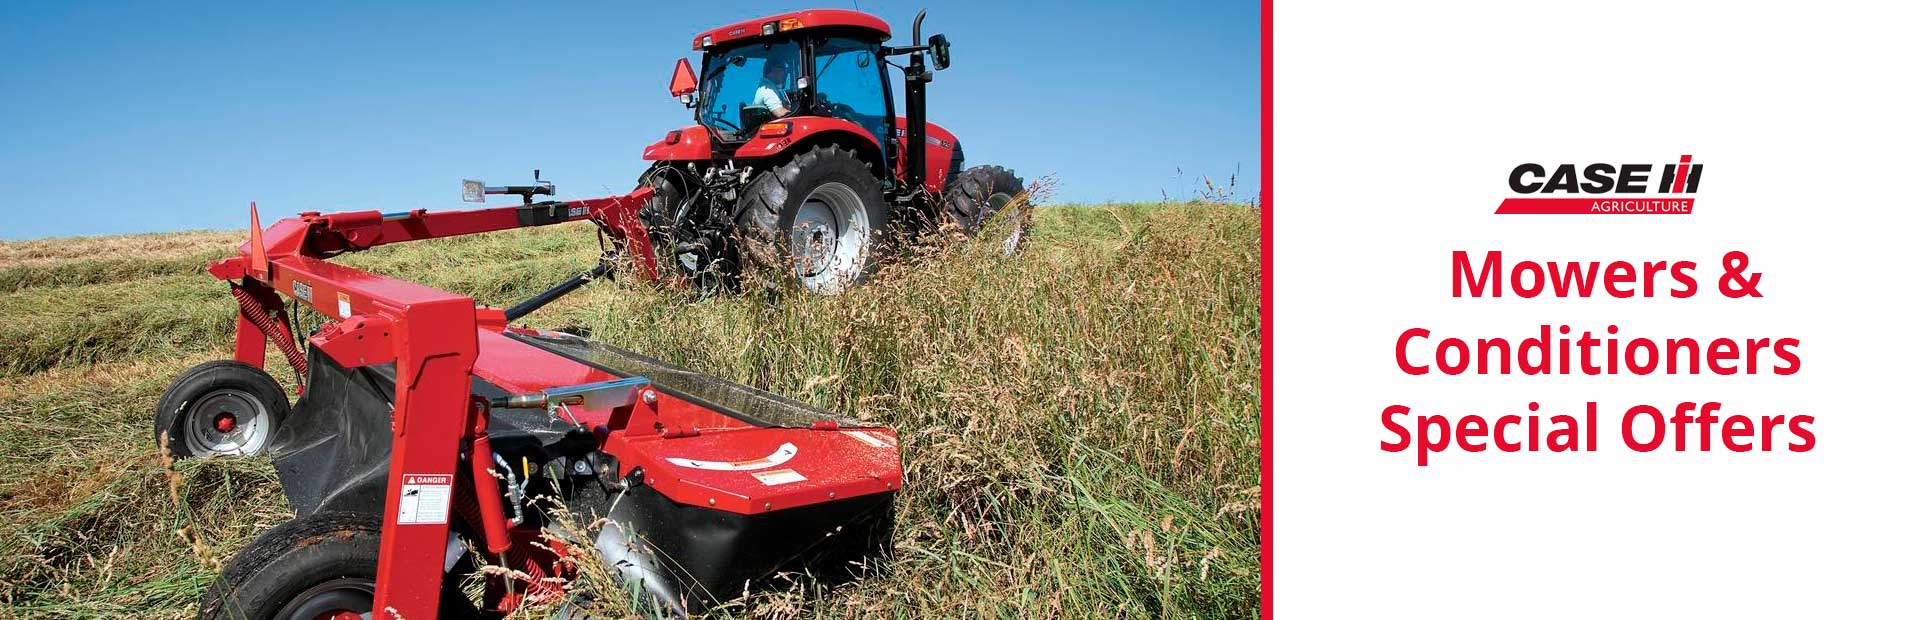 Case IH: Mowers & Conditioners Special Offers